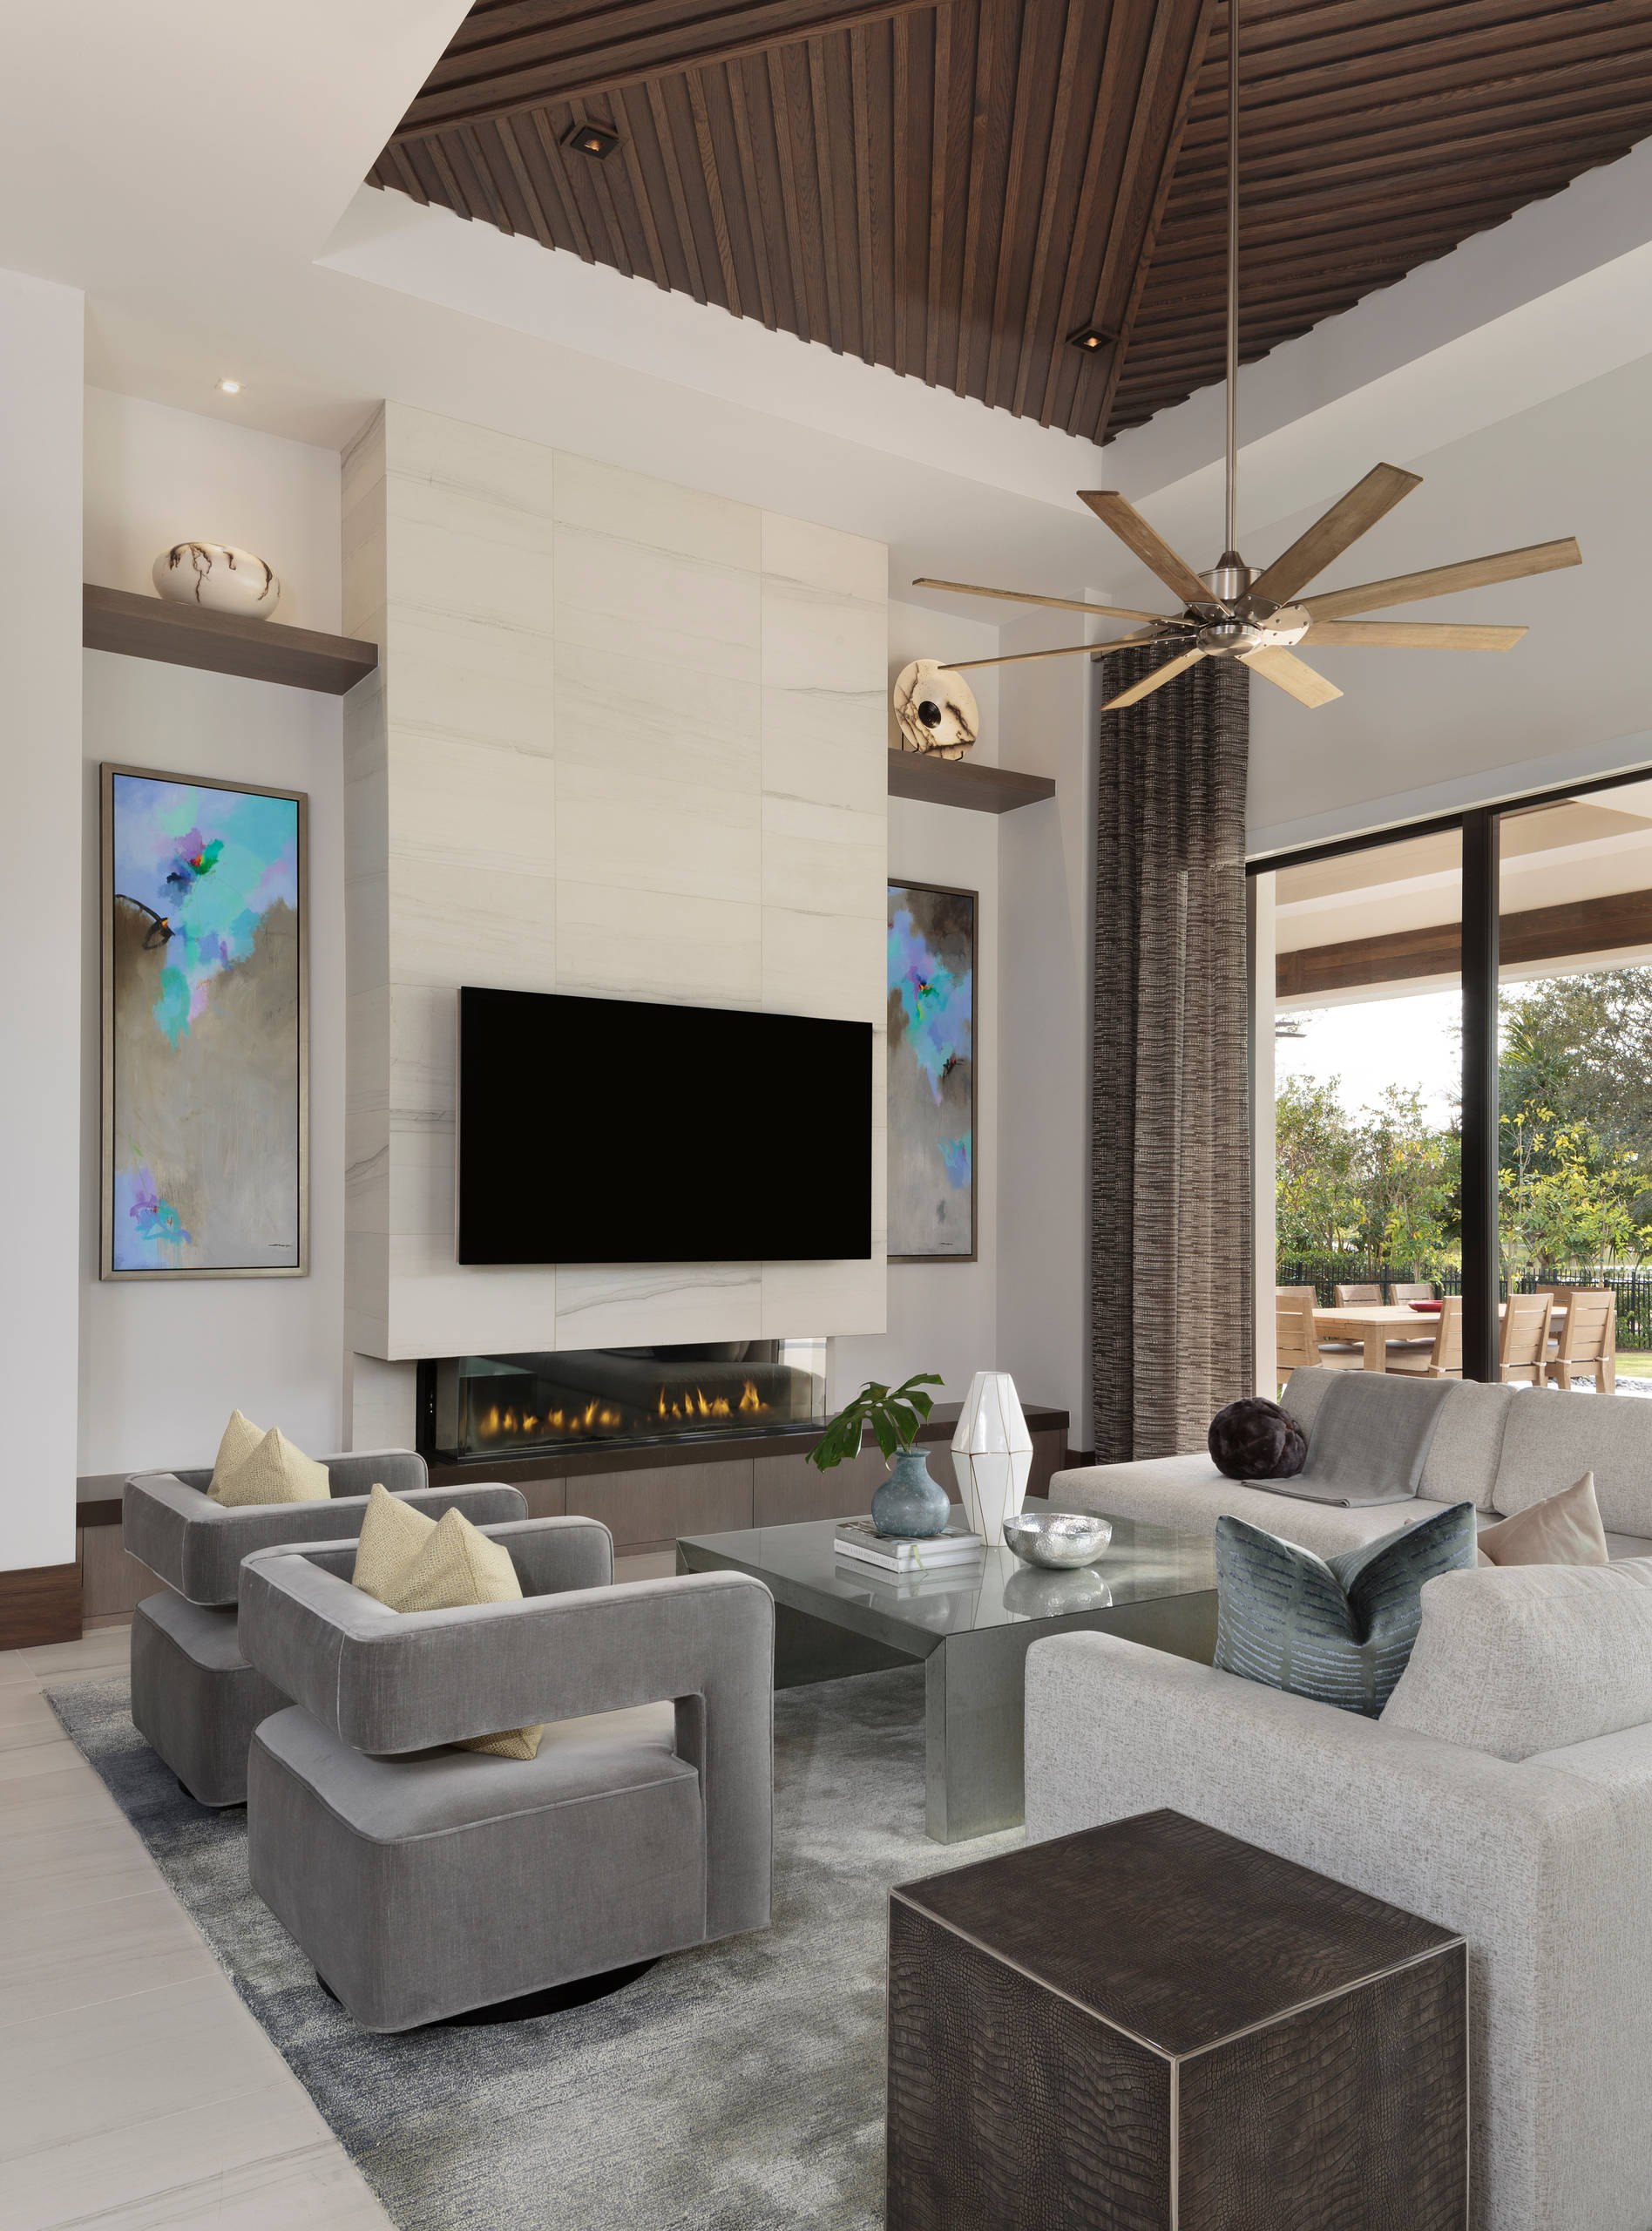 75 Beautiful Modern Living Room Pictures Ideas April 2021 Houzz